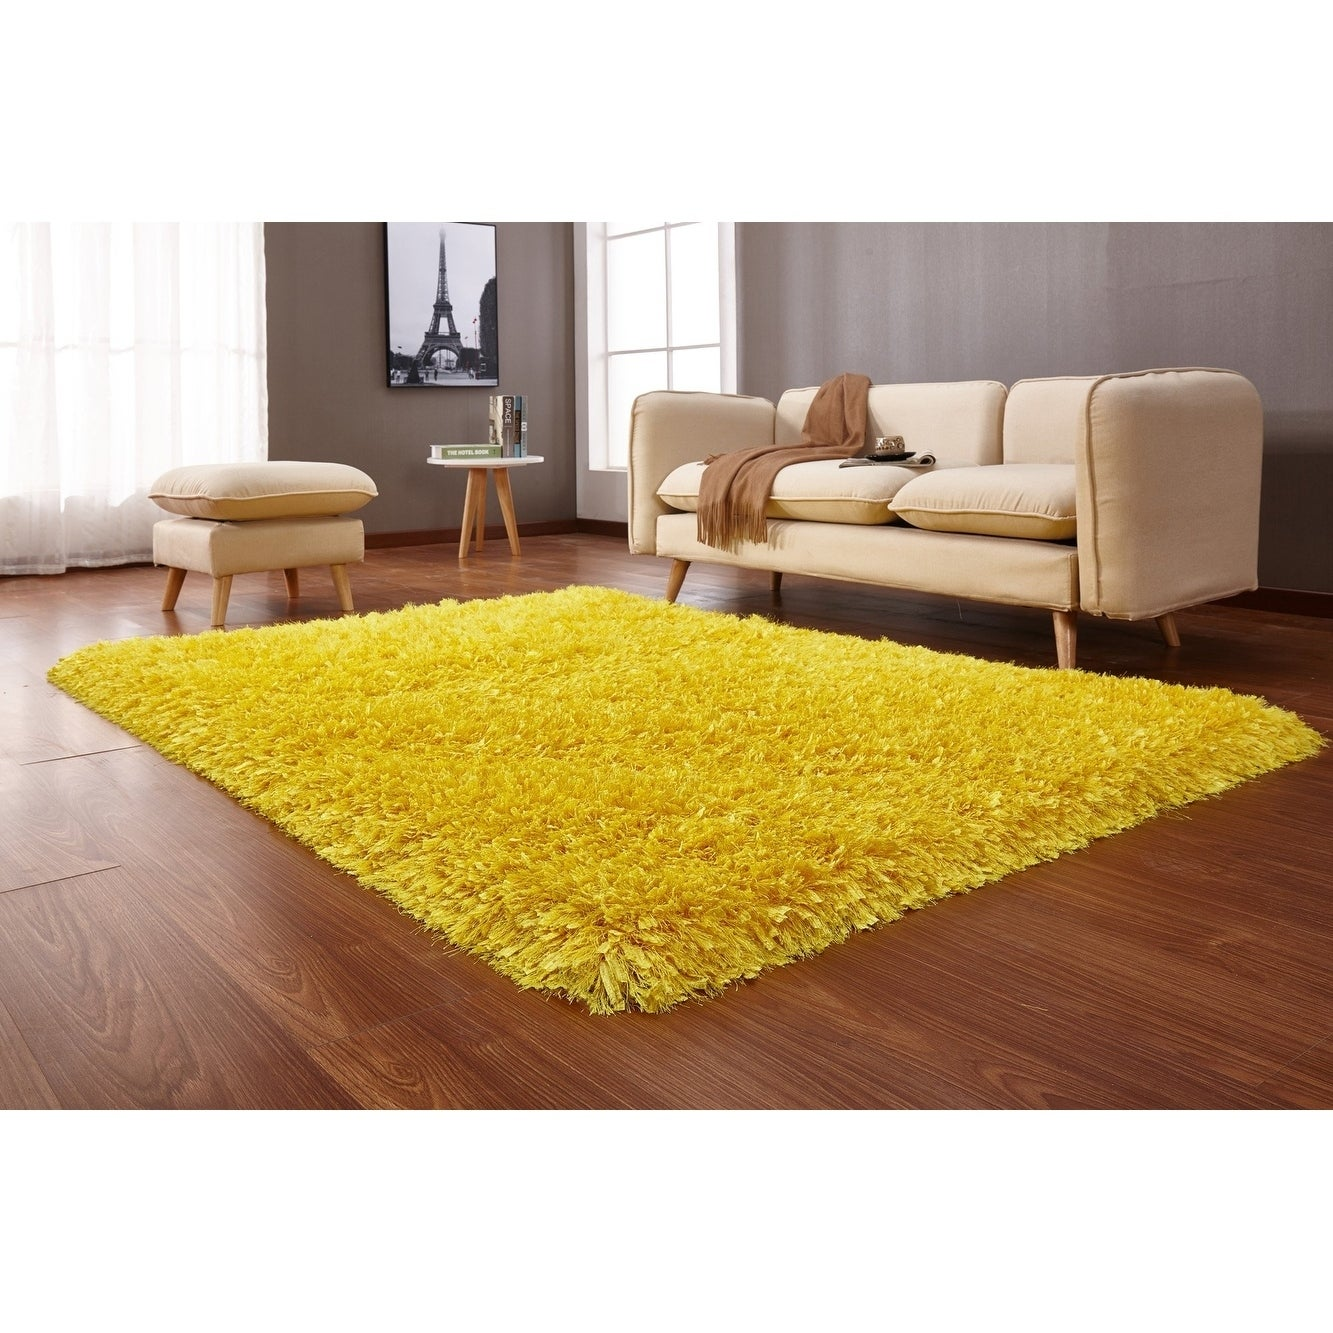 Yellow Area Rug 5x7 - Big